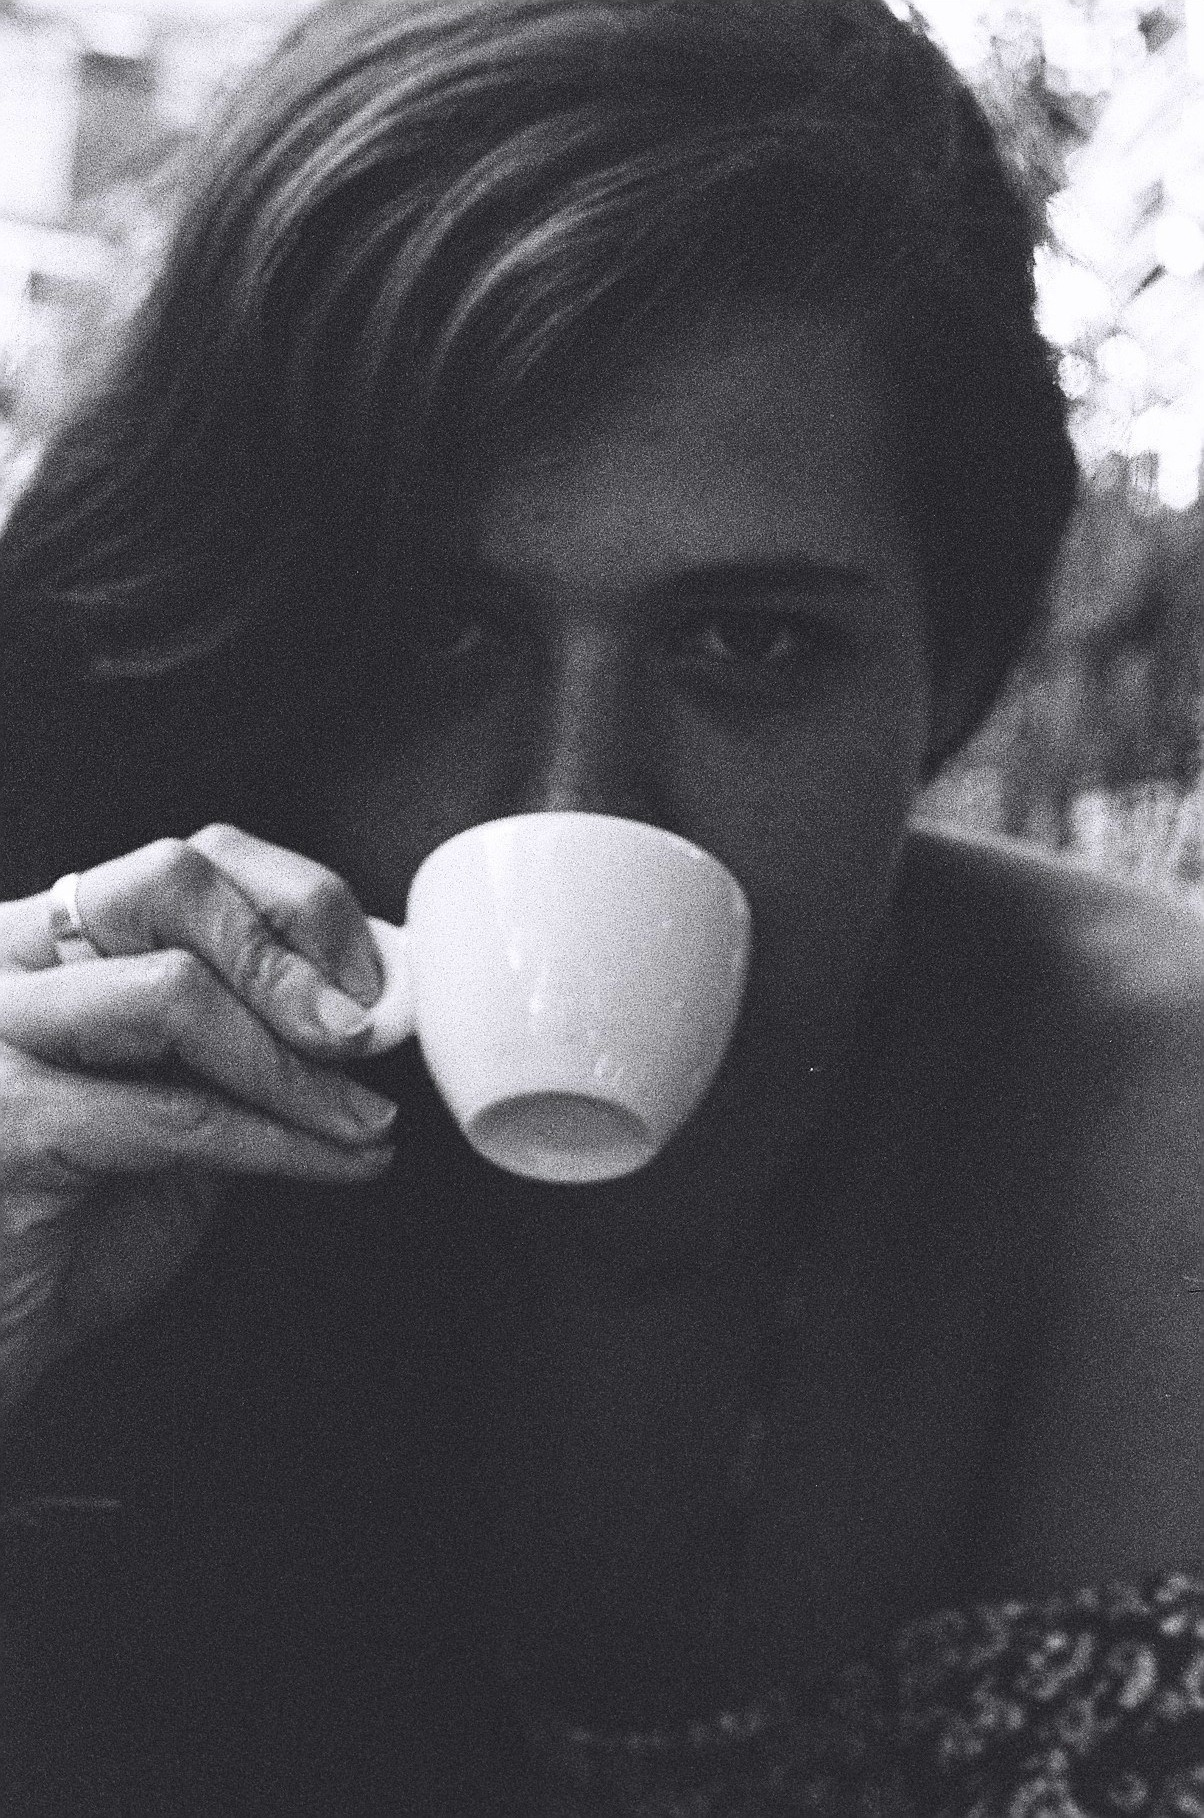 """Coffee or Cigarettes"" by William Baglione: Julia Bolliger 2.JPG"